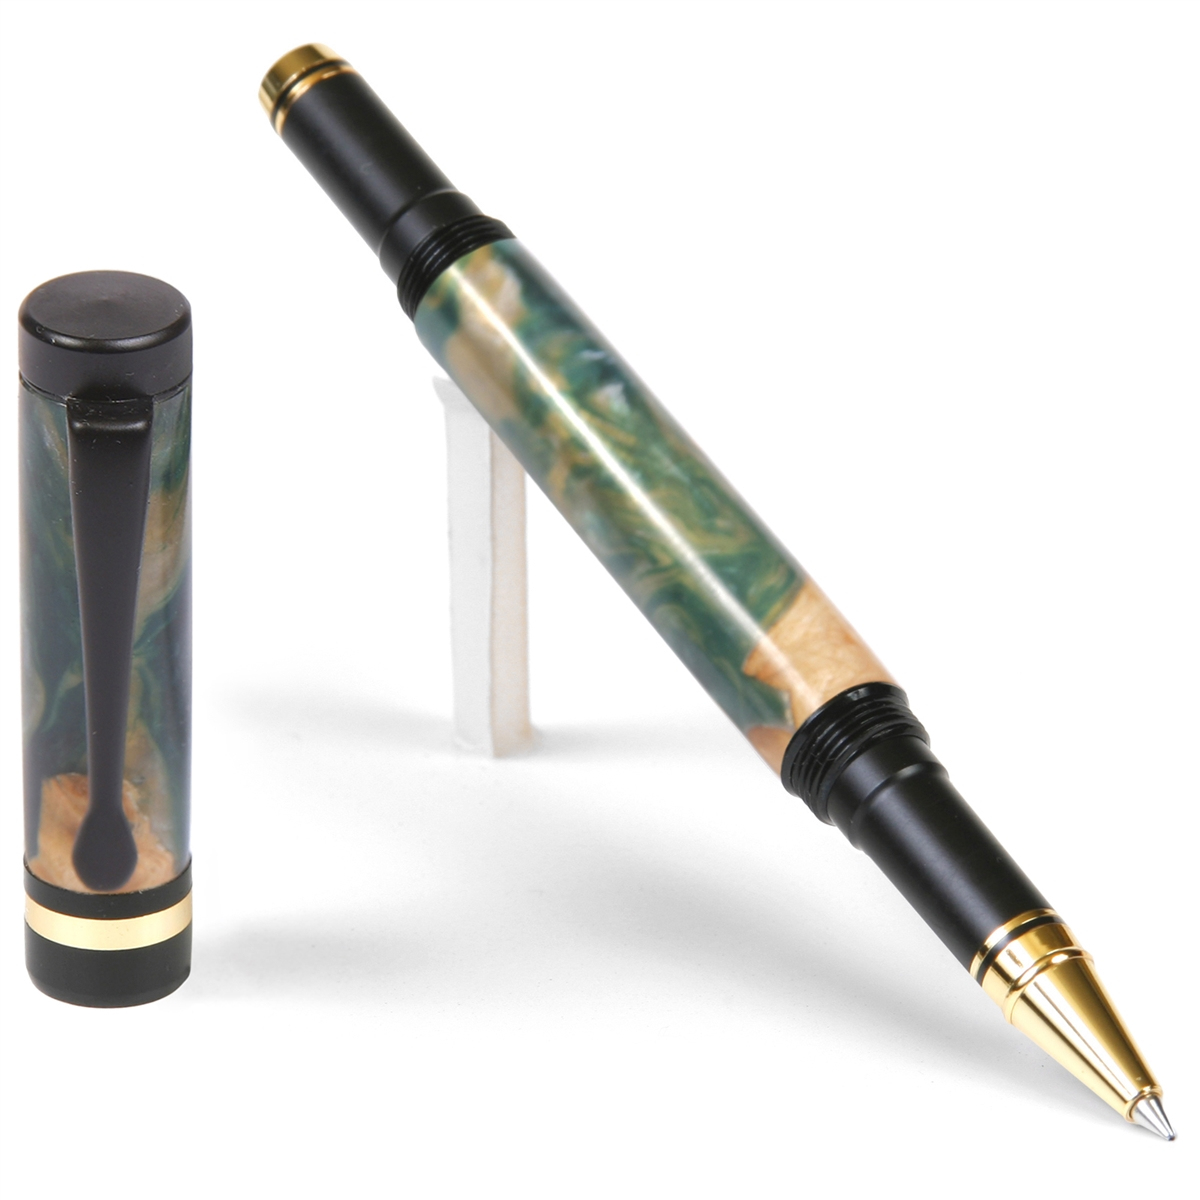 Classic Rollerball Pen - Green and Silver Burl End Cap